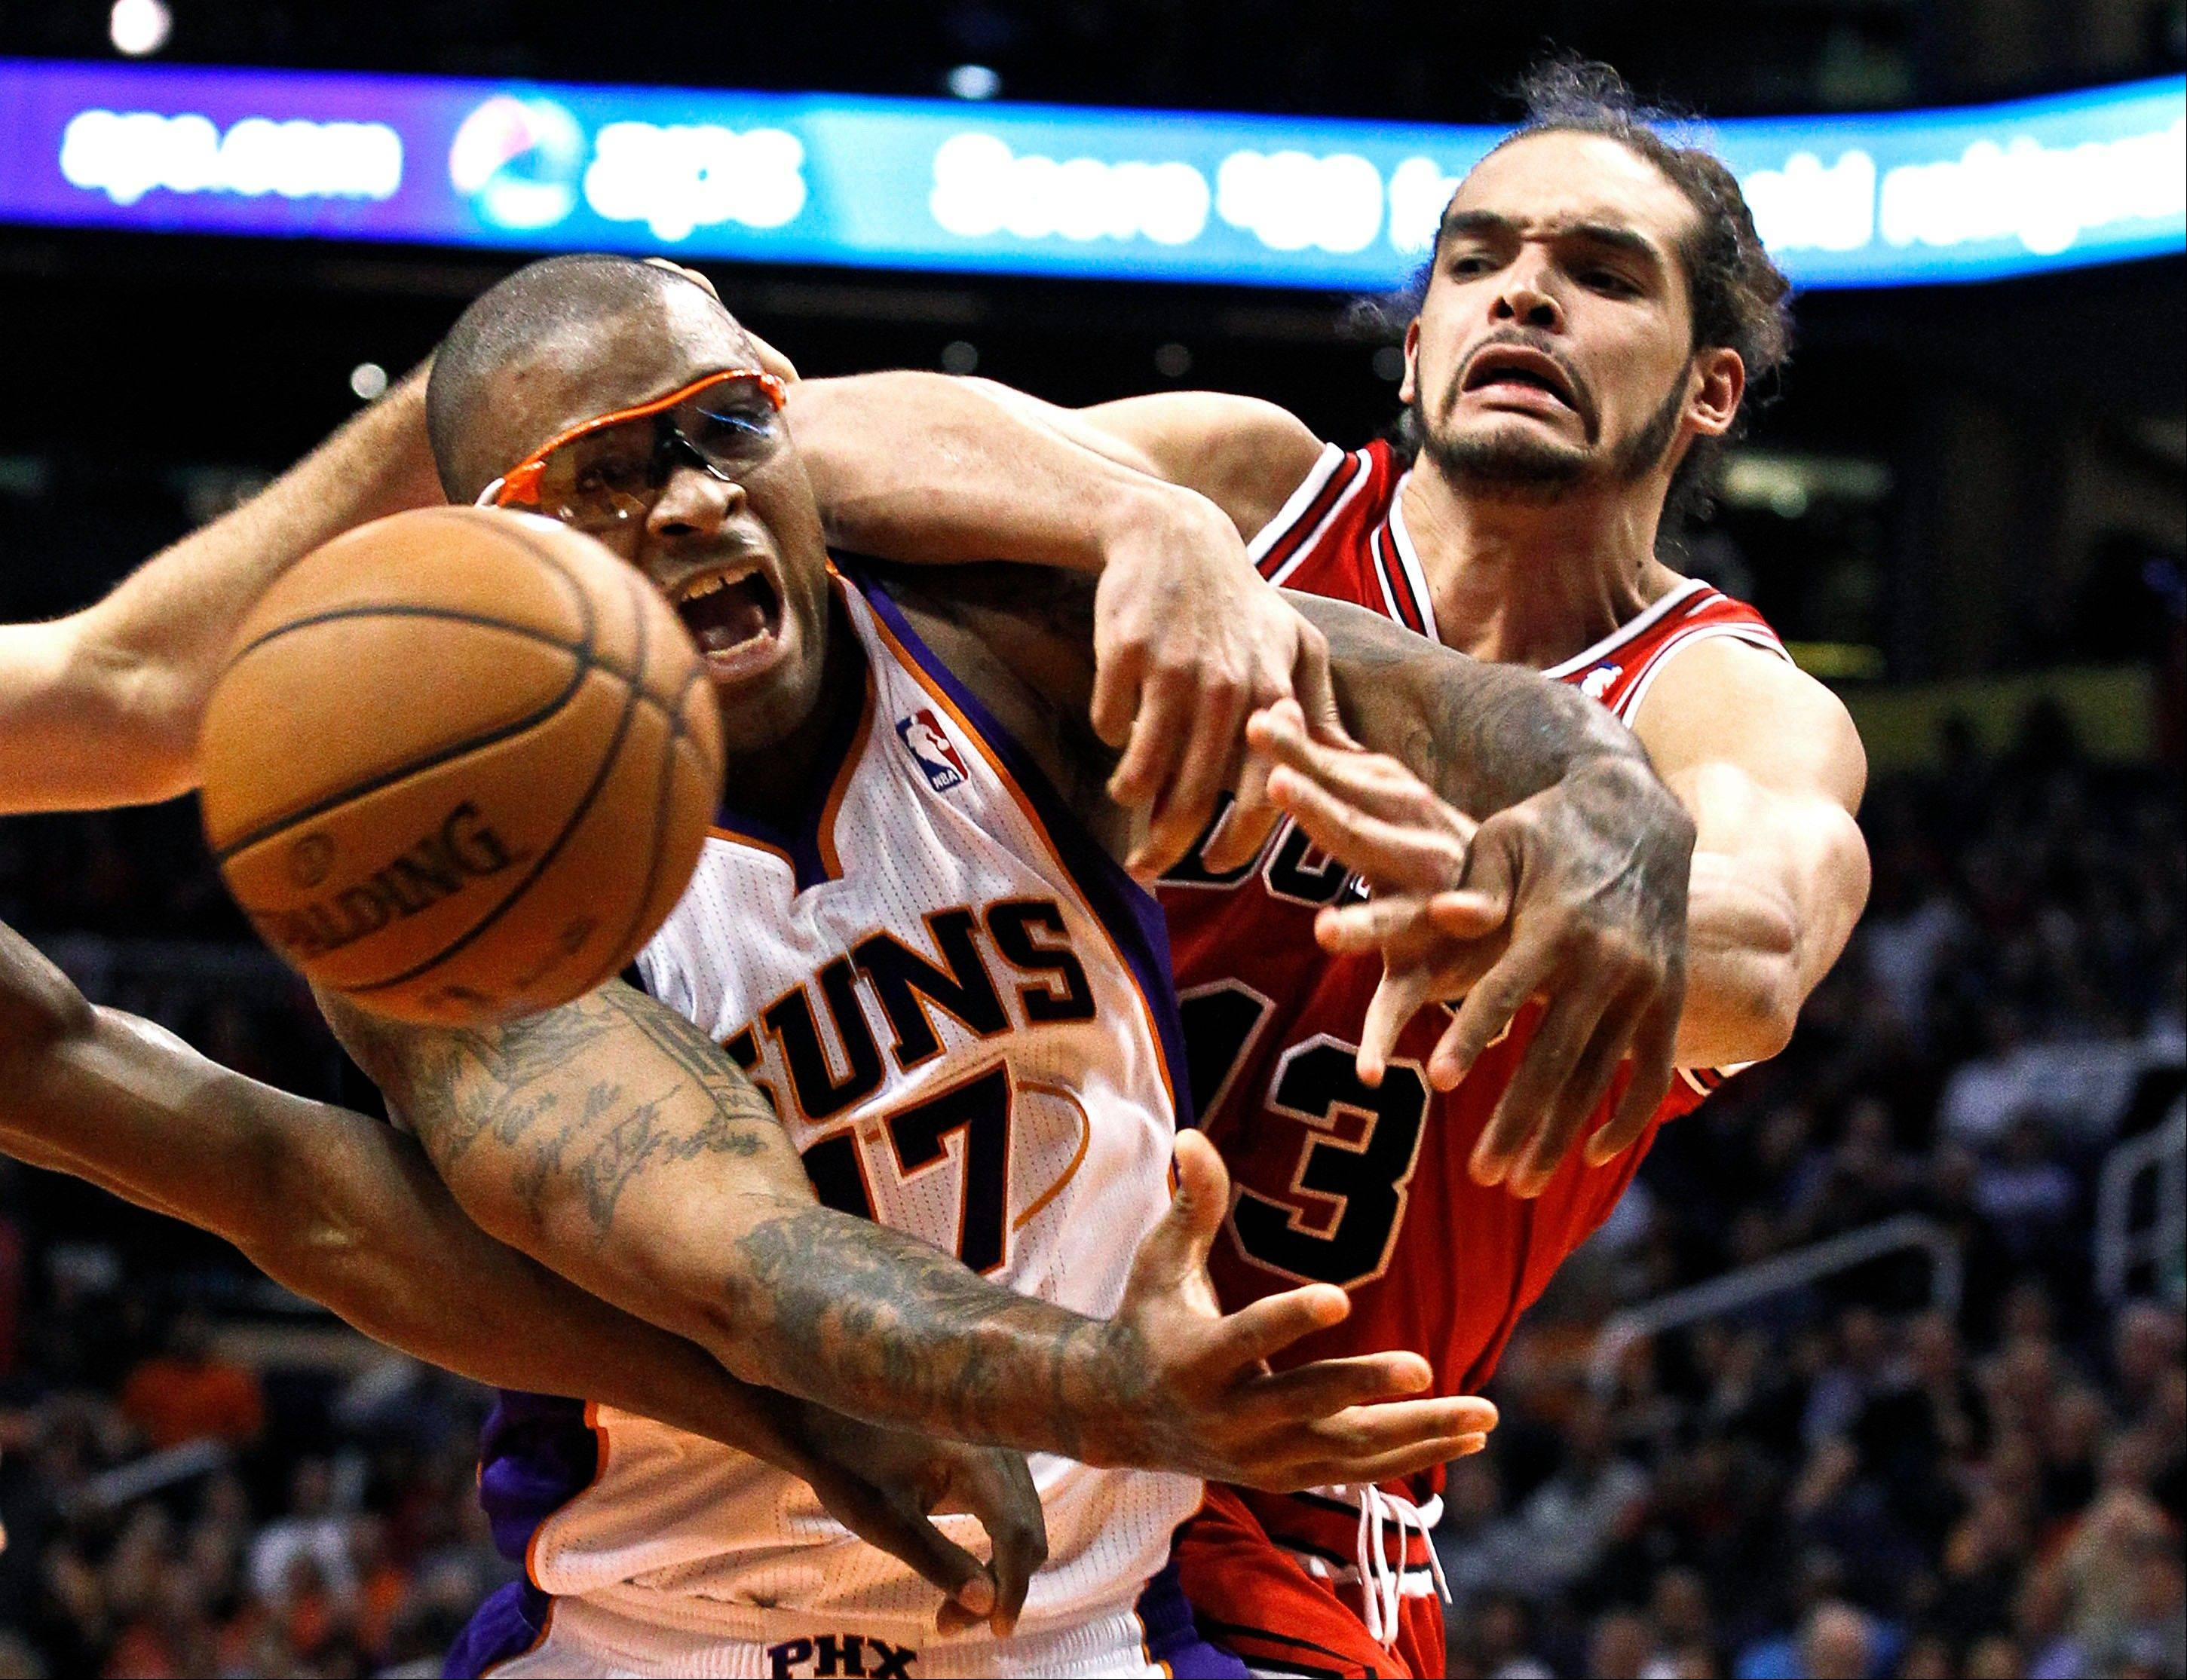 The Phoenix Suns� P.J. Tucker battles Bulls center Joakim Noah for a loose ball Wednesday during the second half in Phoenix. The Bulls won 112-106.